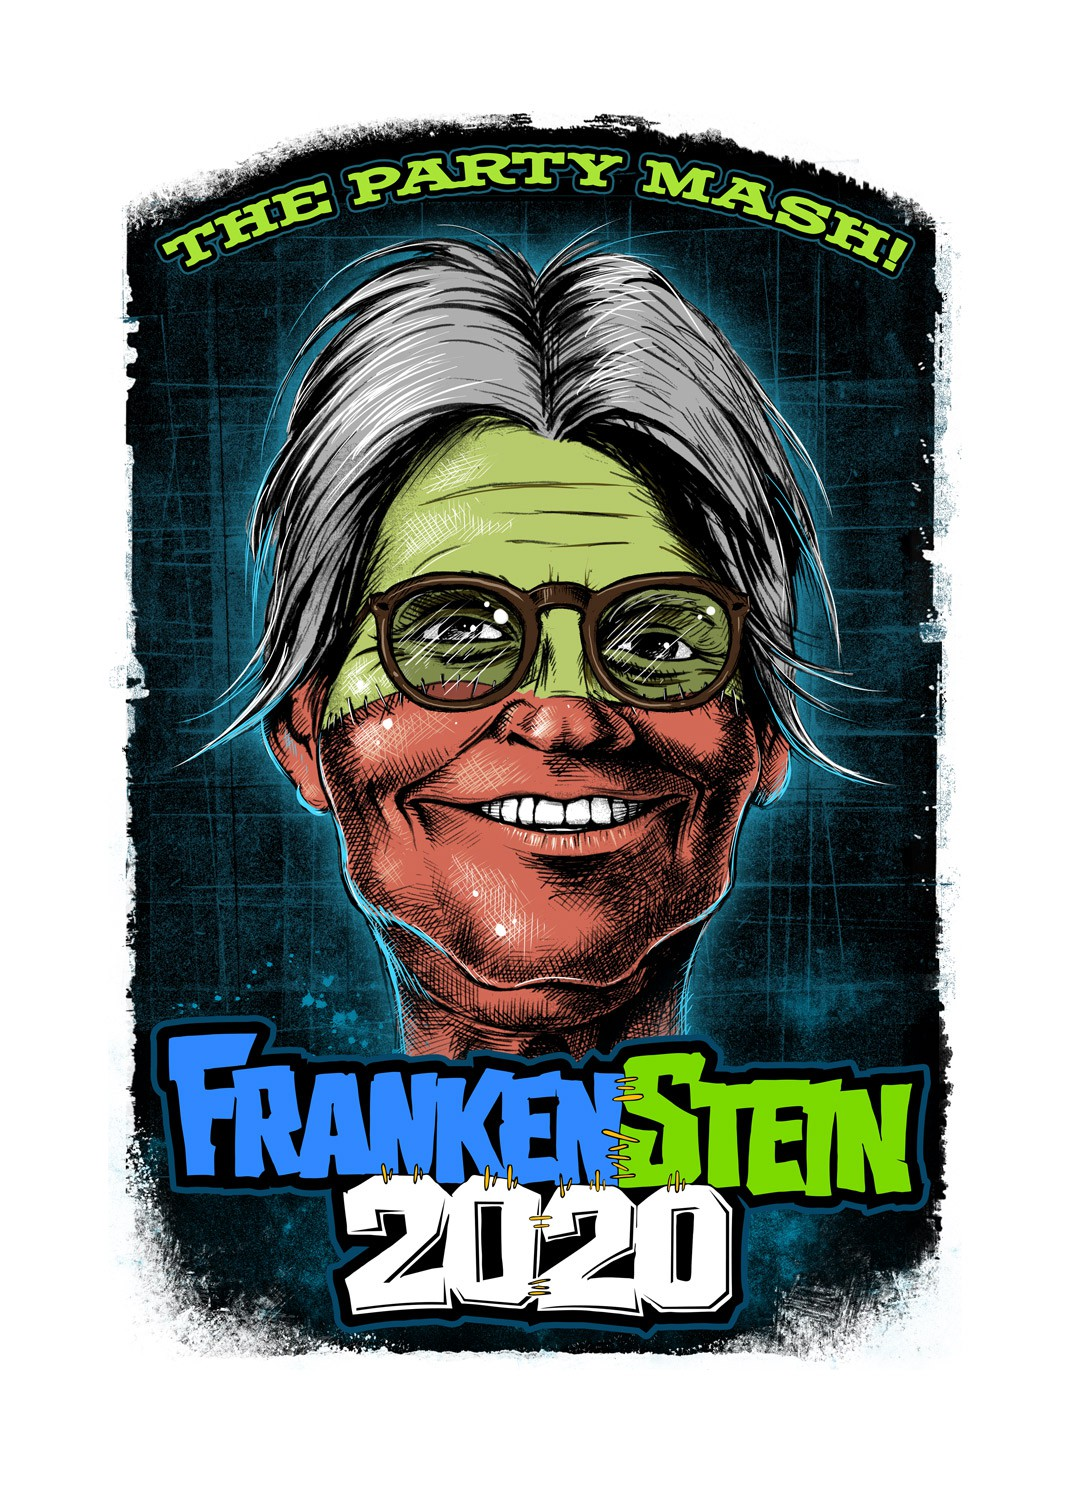 The Hippest Political T-Shirt Of 2020 NOW!